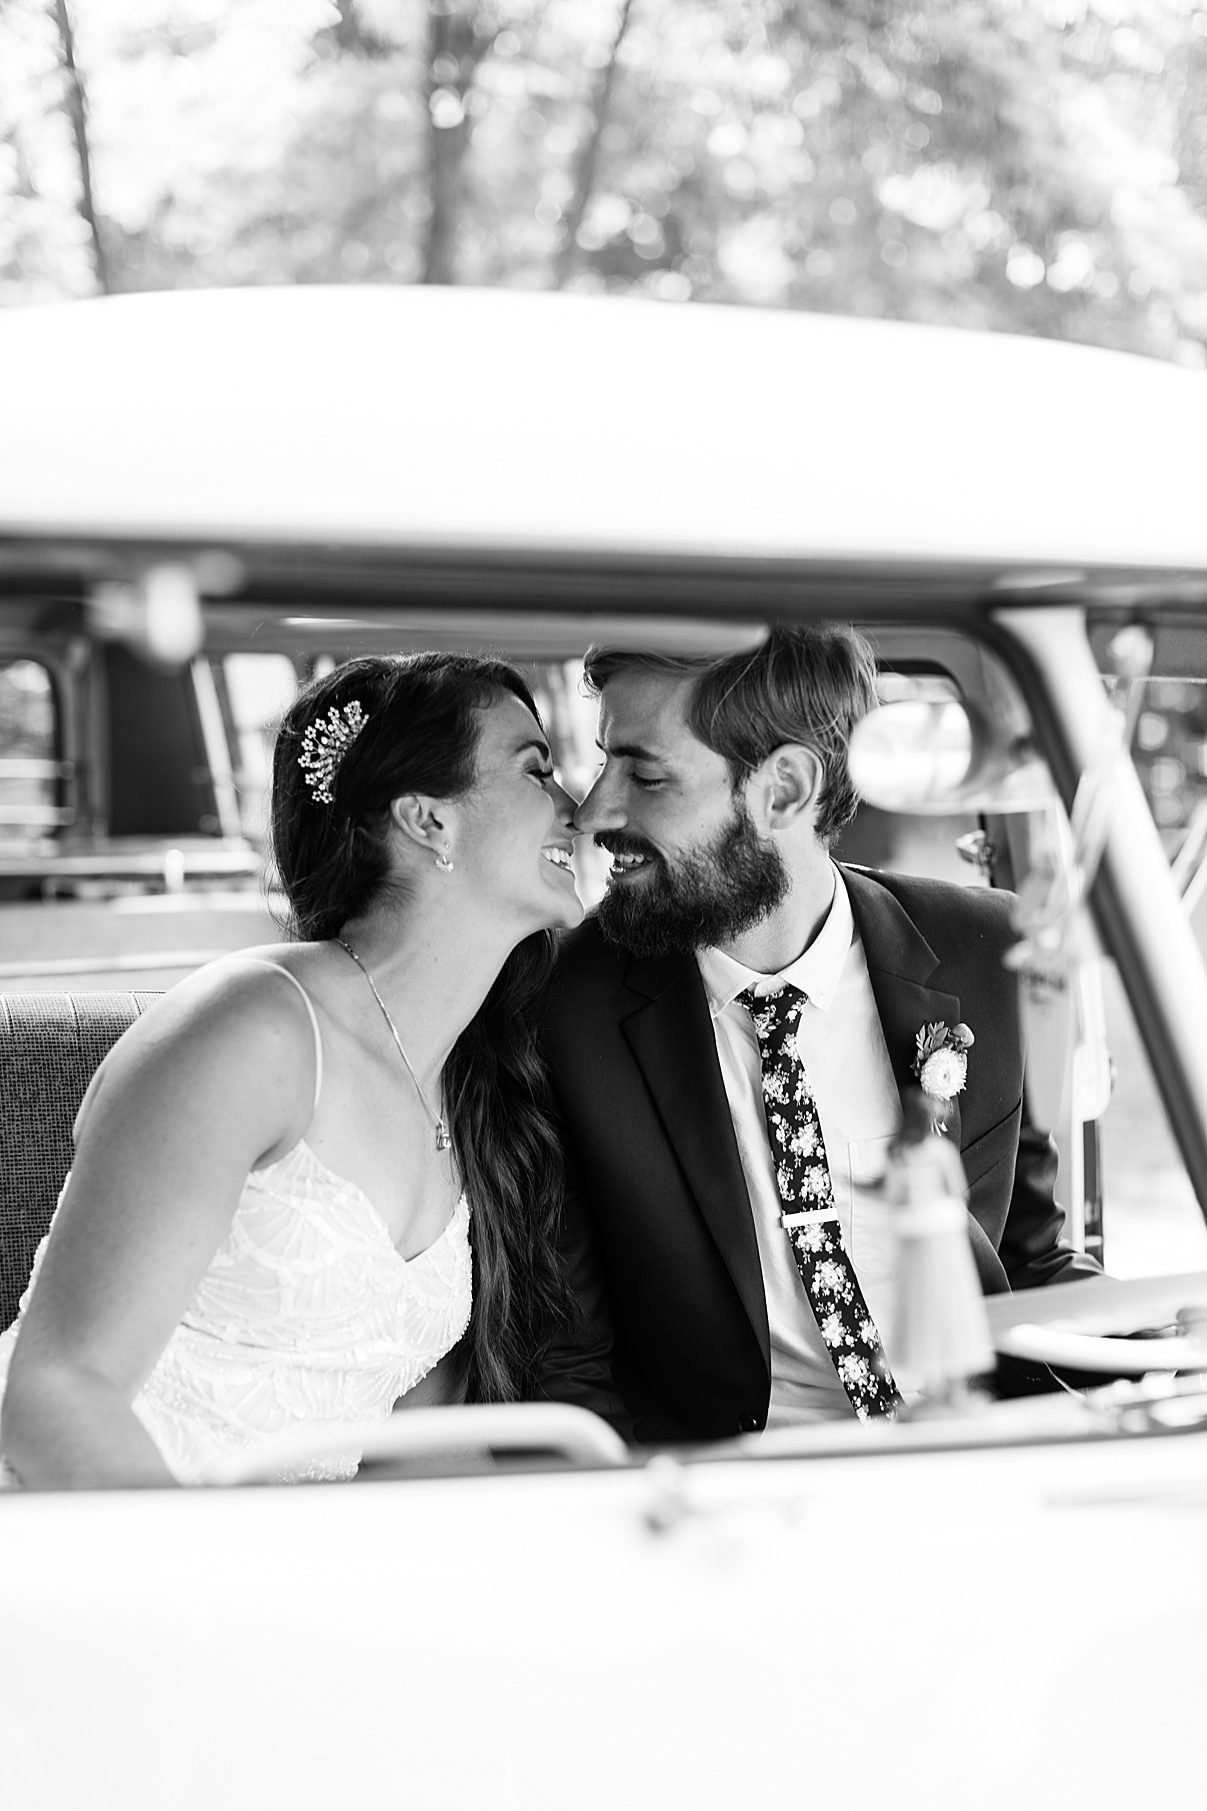 Black and white bride and groom kissing inside vintage bus | Balls Falls, Ontario Wedding| Ontario Wedding Photographer| Toronto Wedding Photographer| 3Photography| 3photography.ca